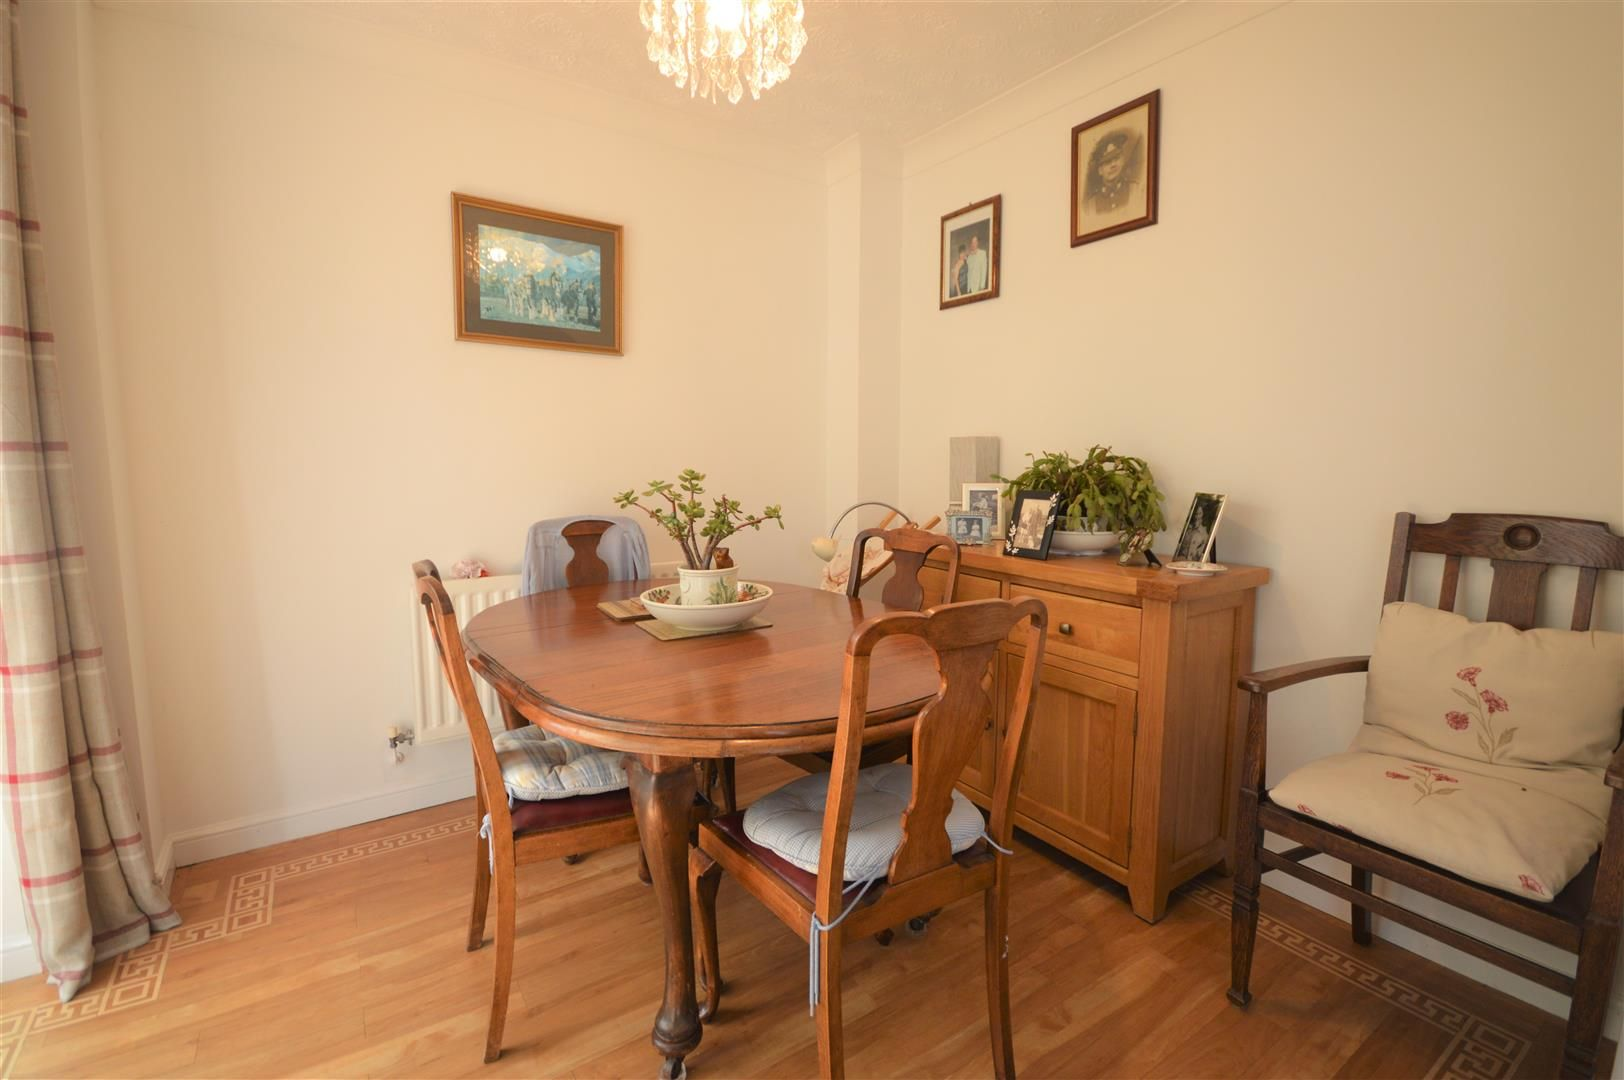 4 bed detached for sale in Leominster 3